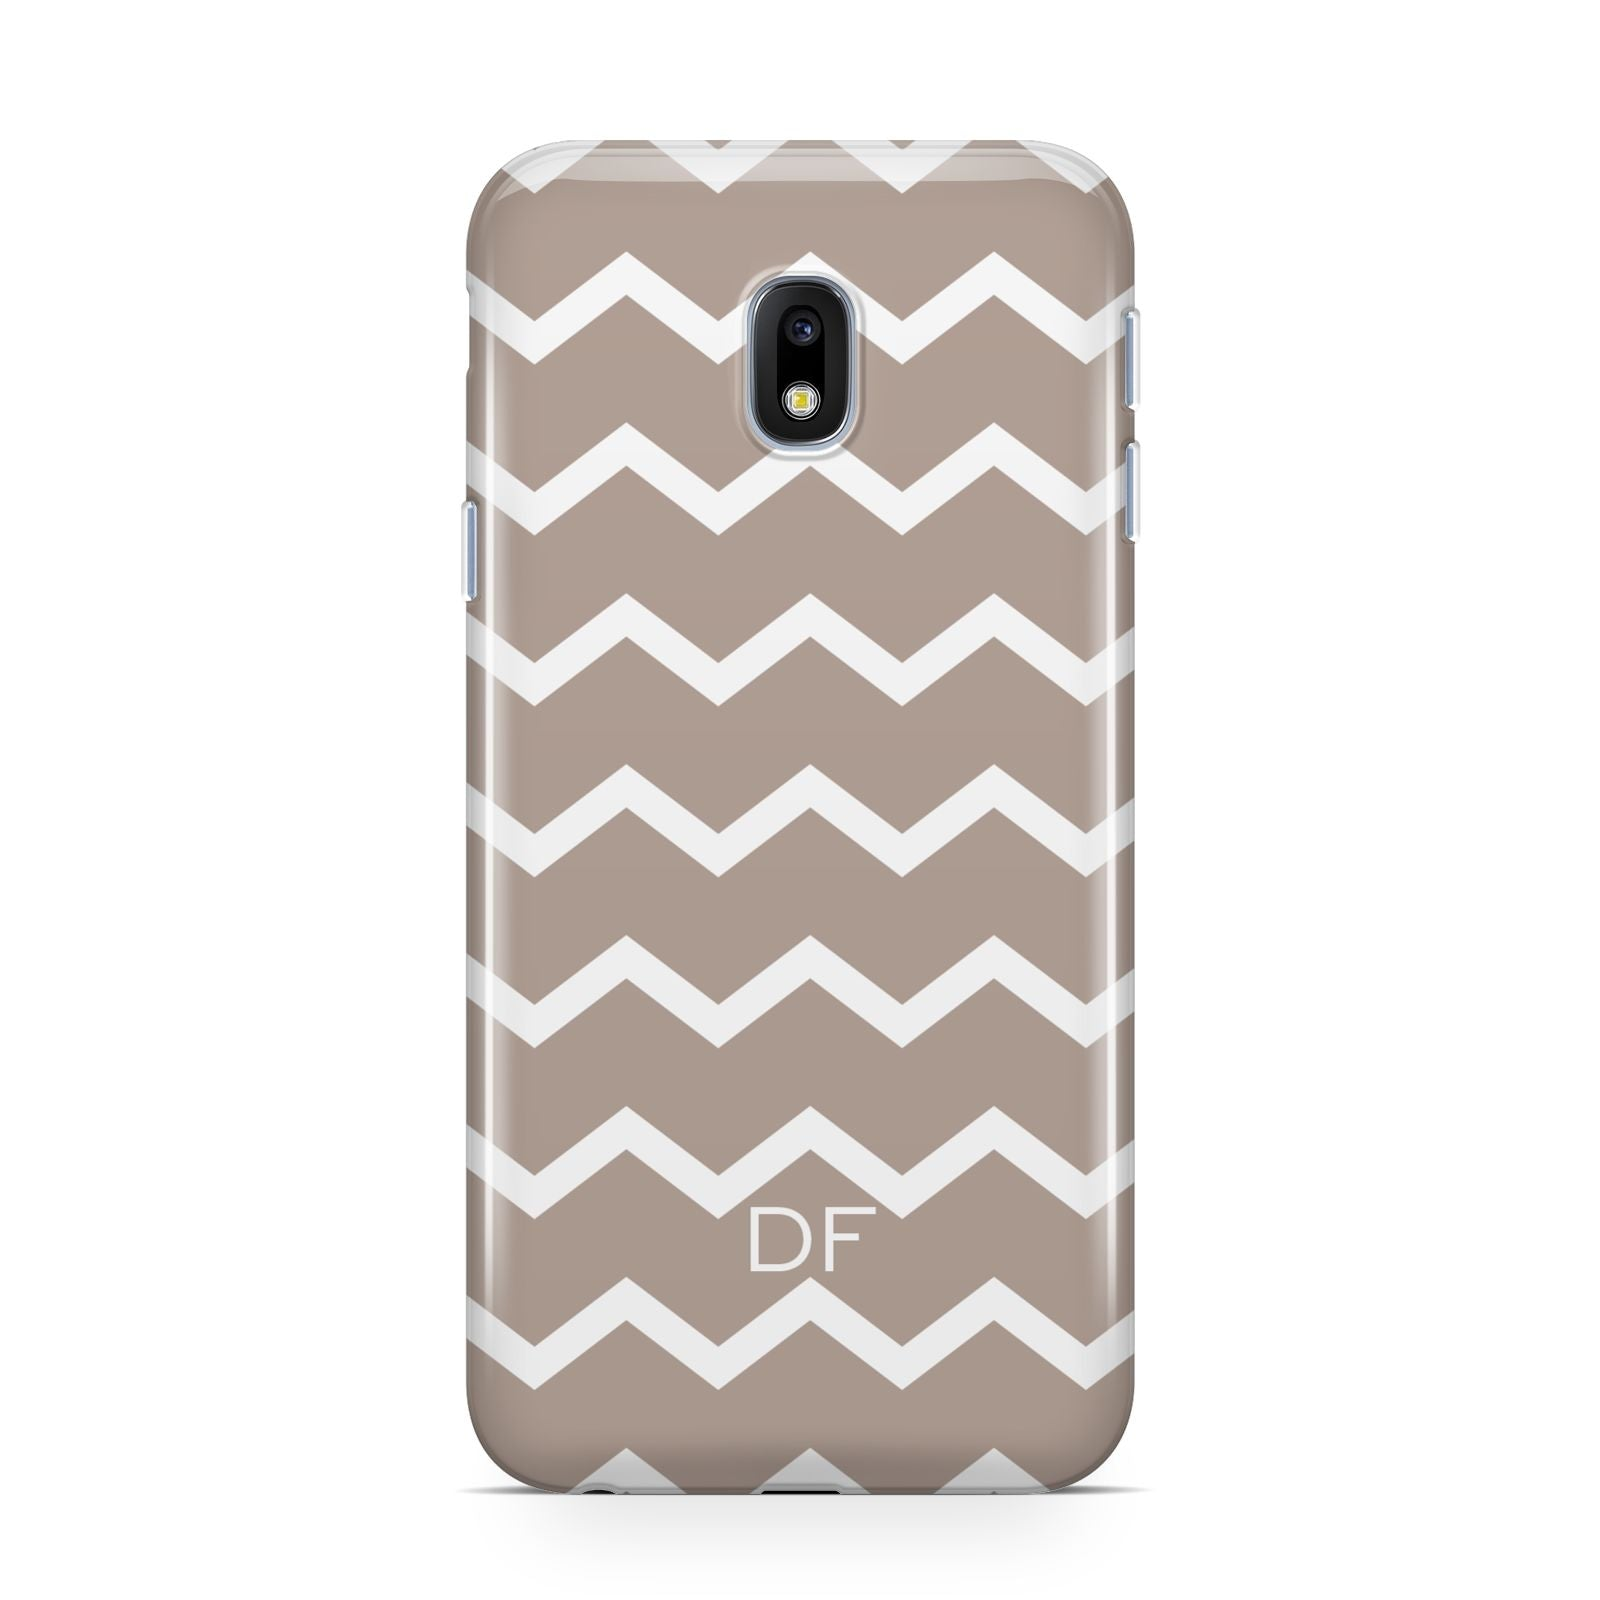 Personalised Chevron Beige Samsung Galaxy J3 2017 Case